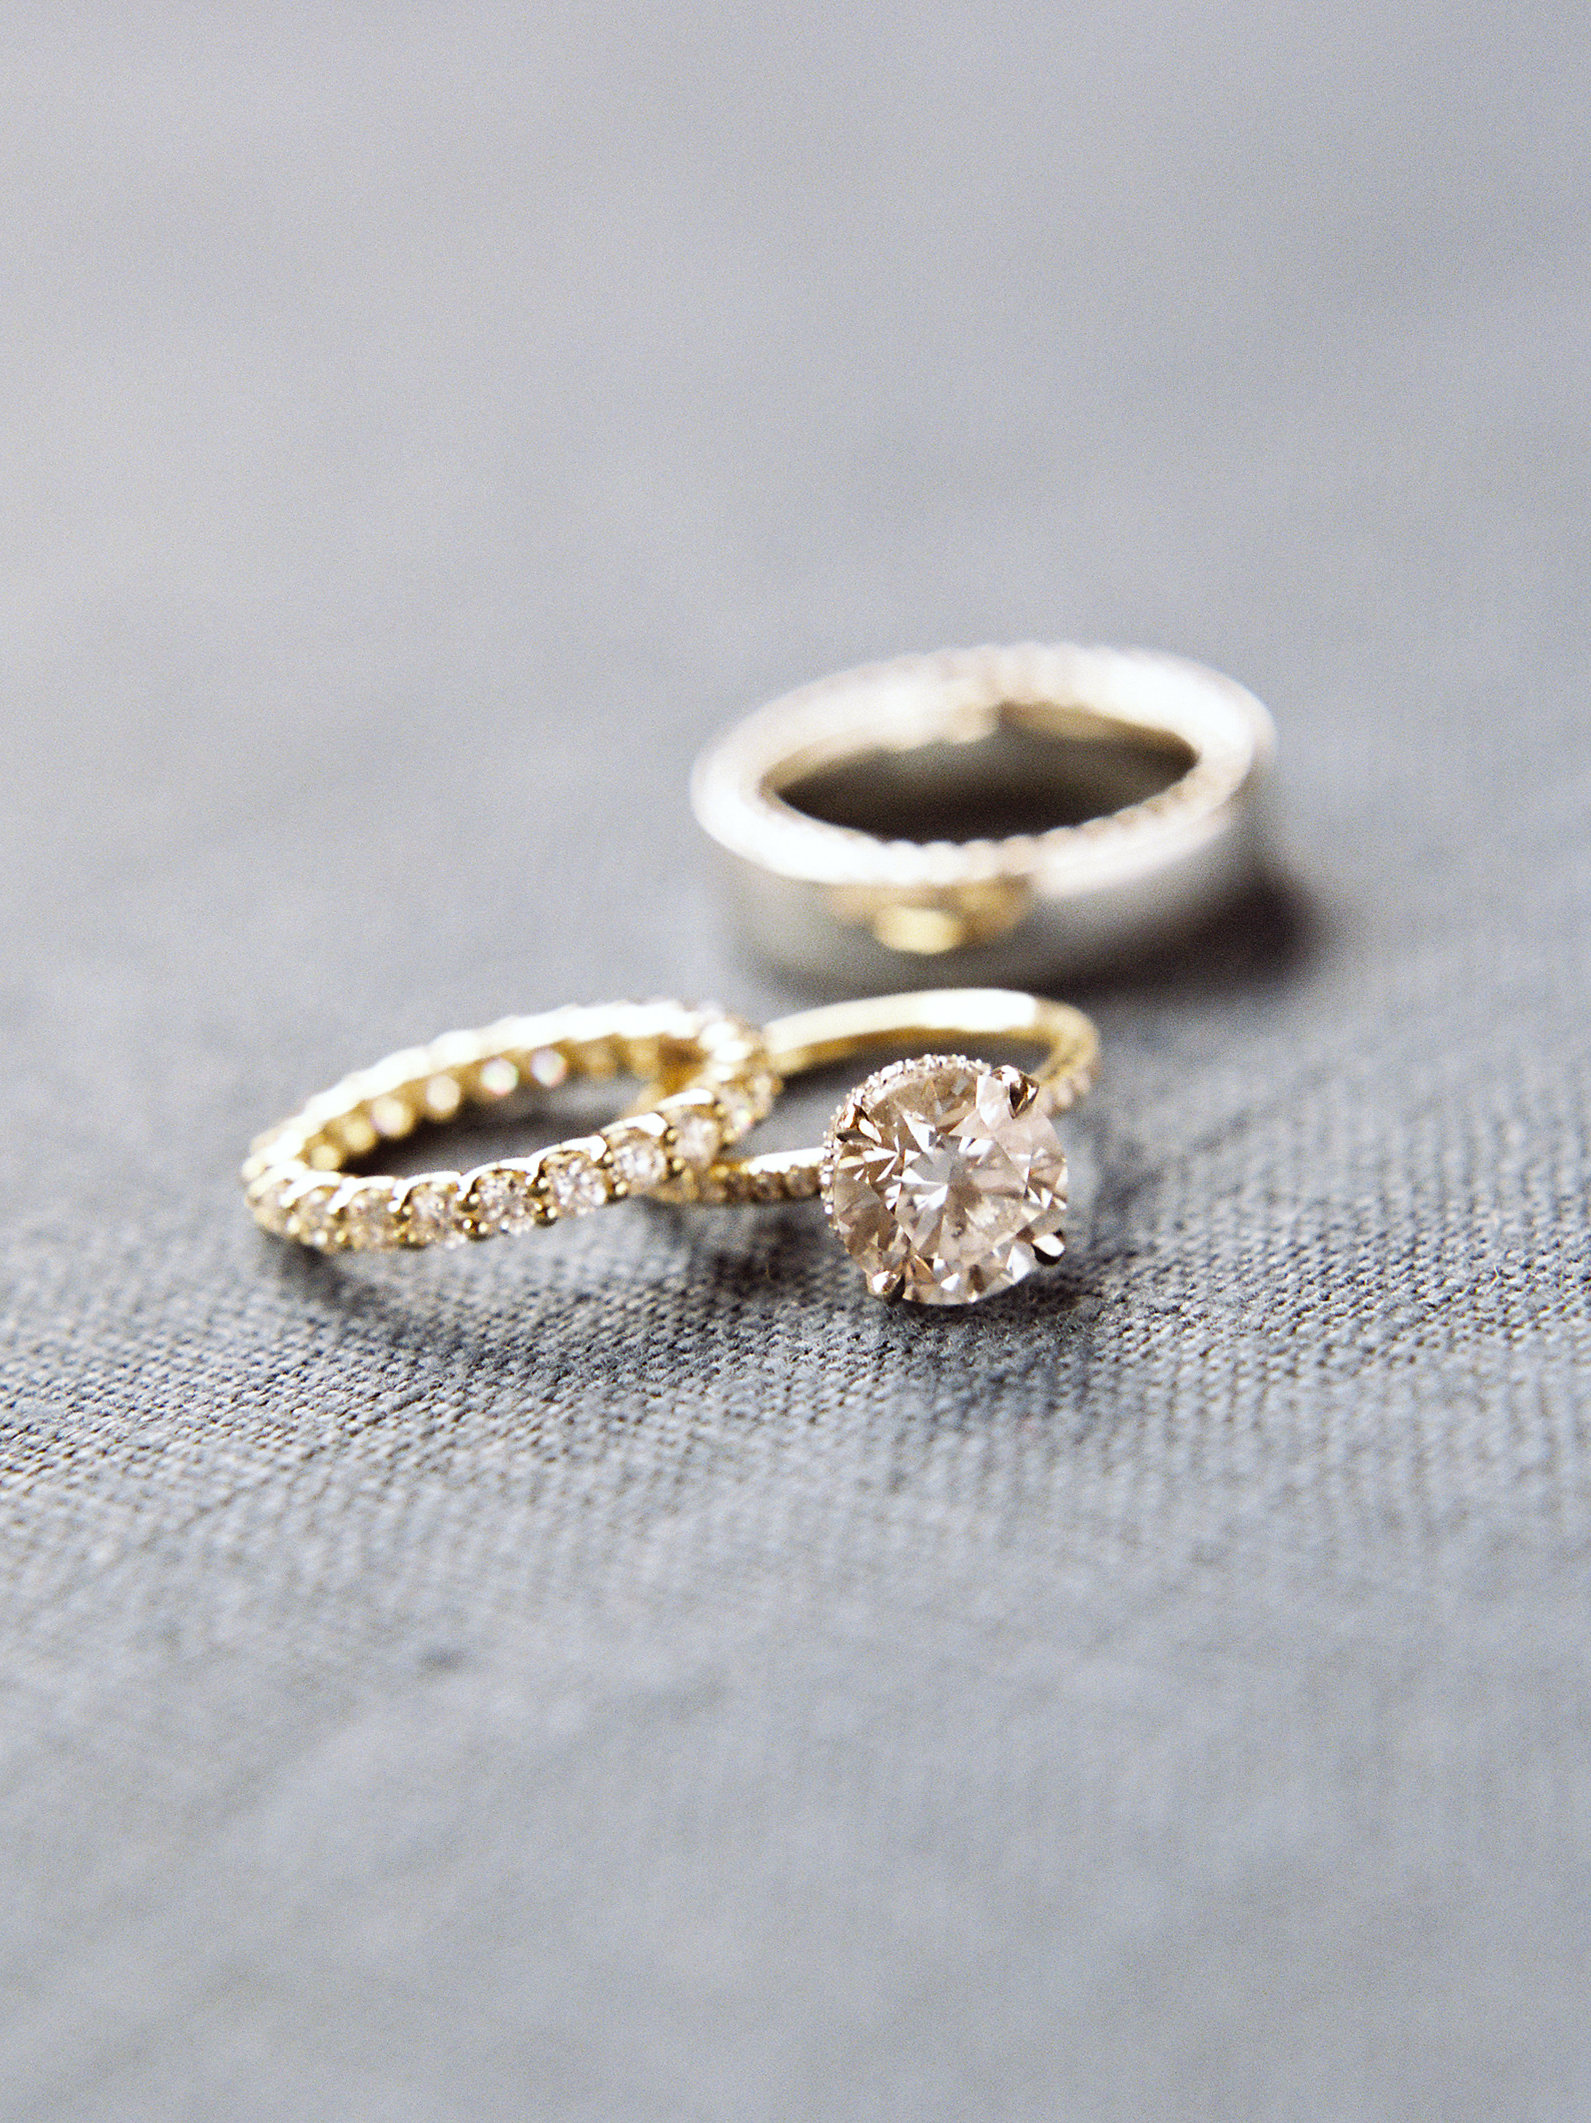 taylor cameron wedding rings